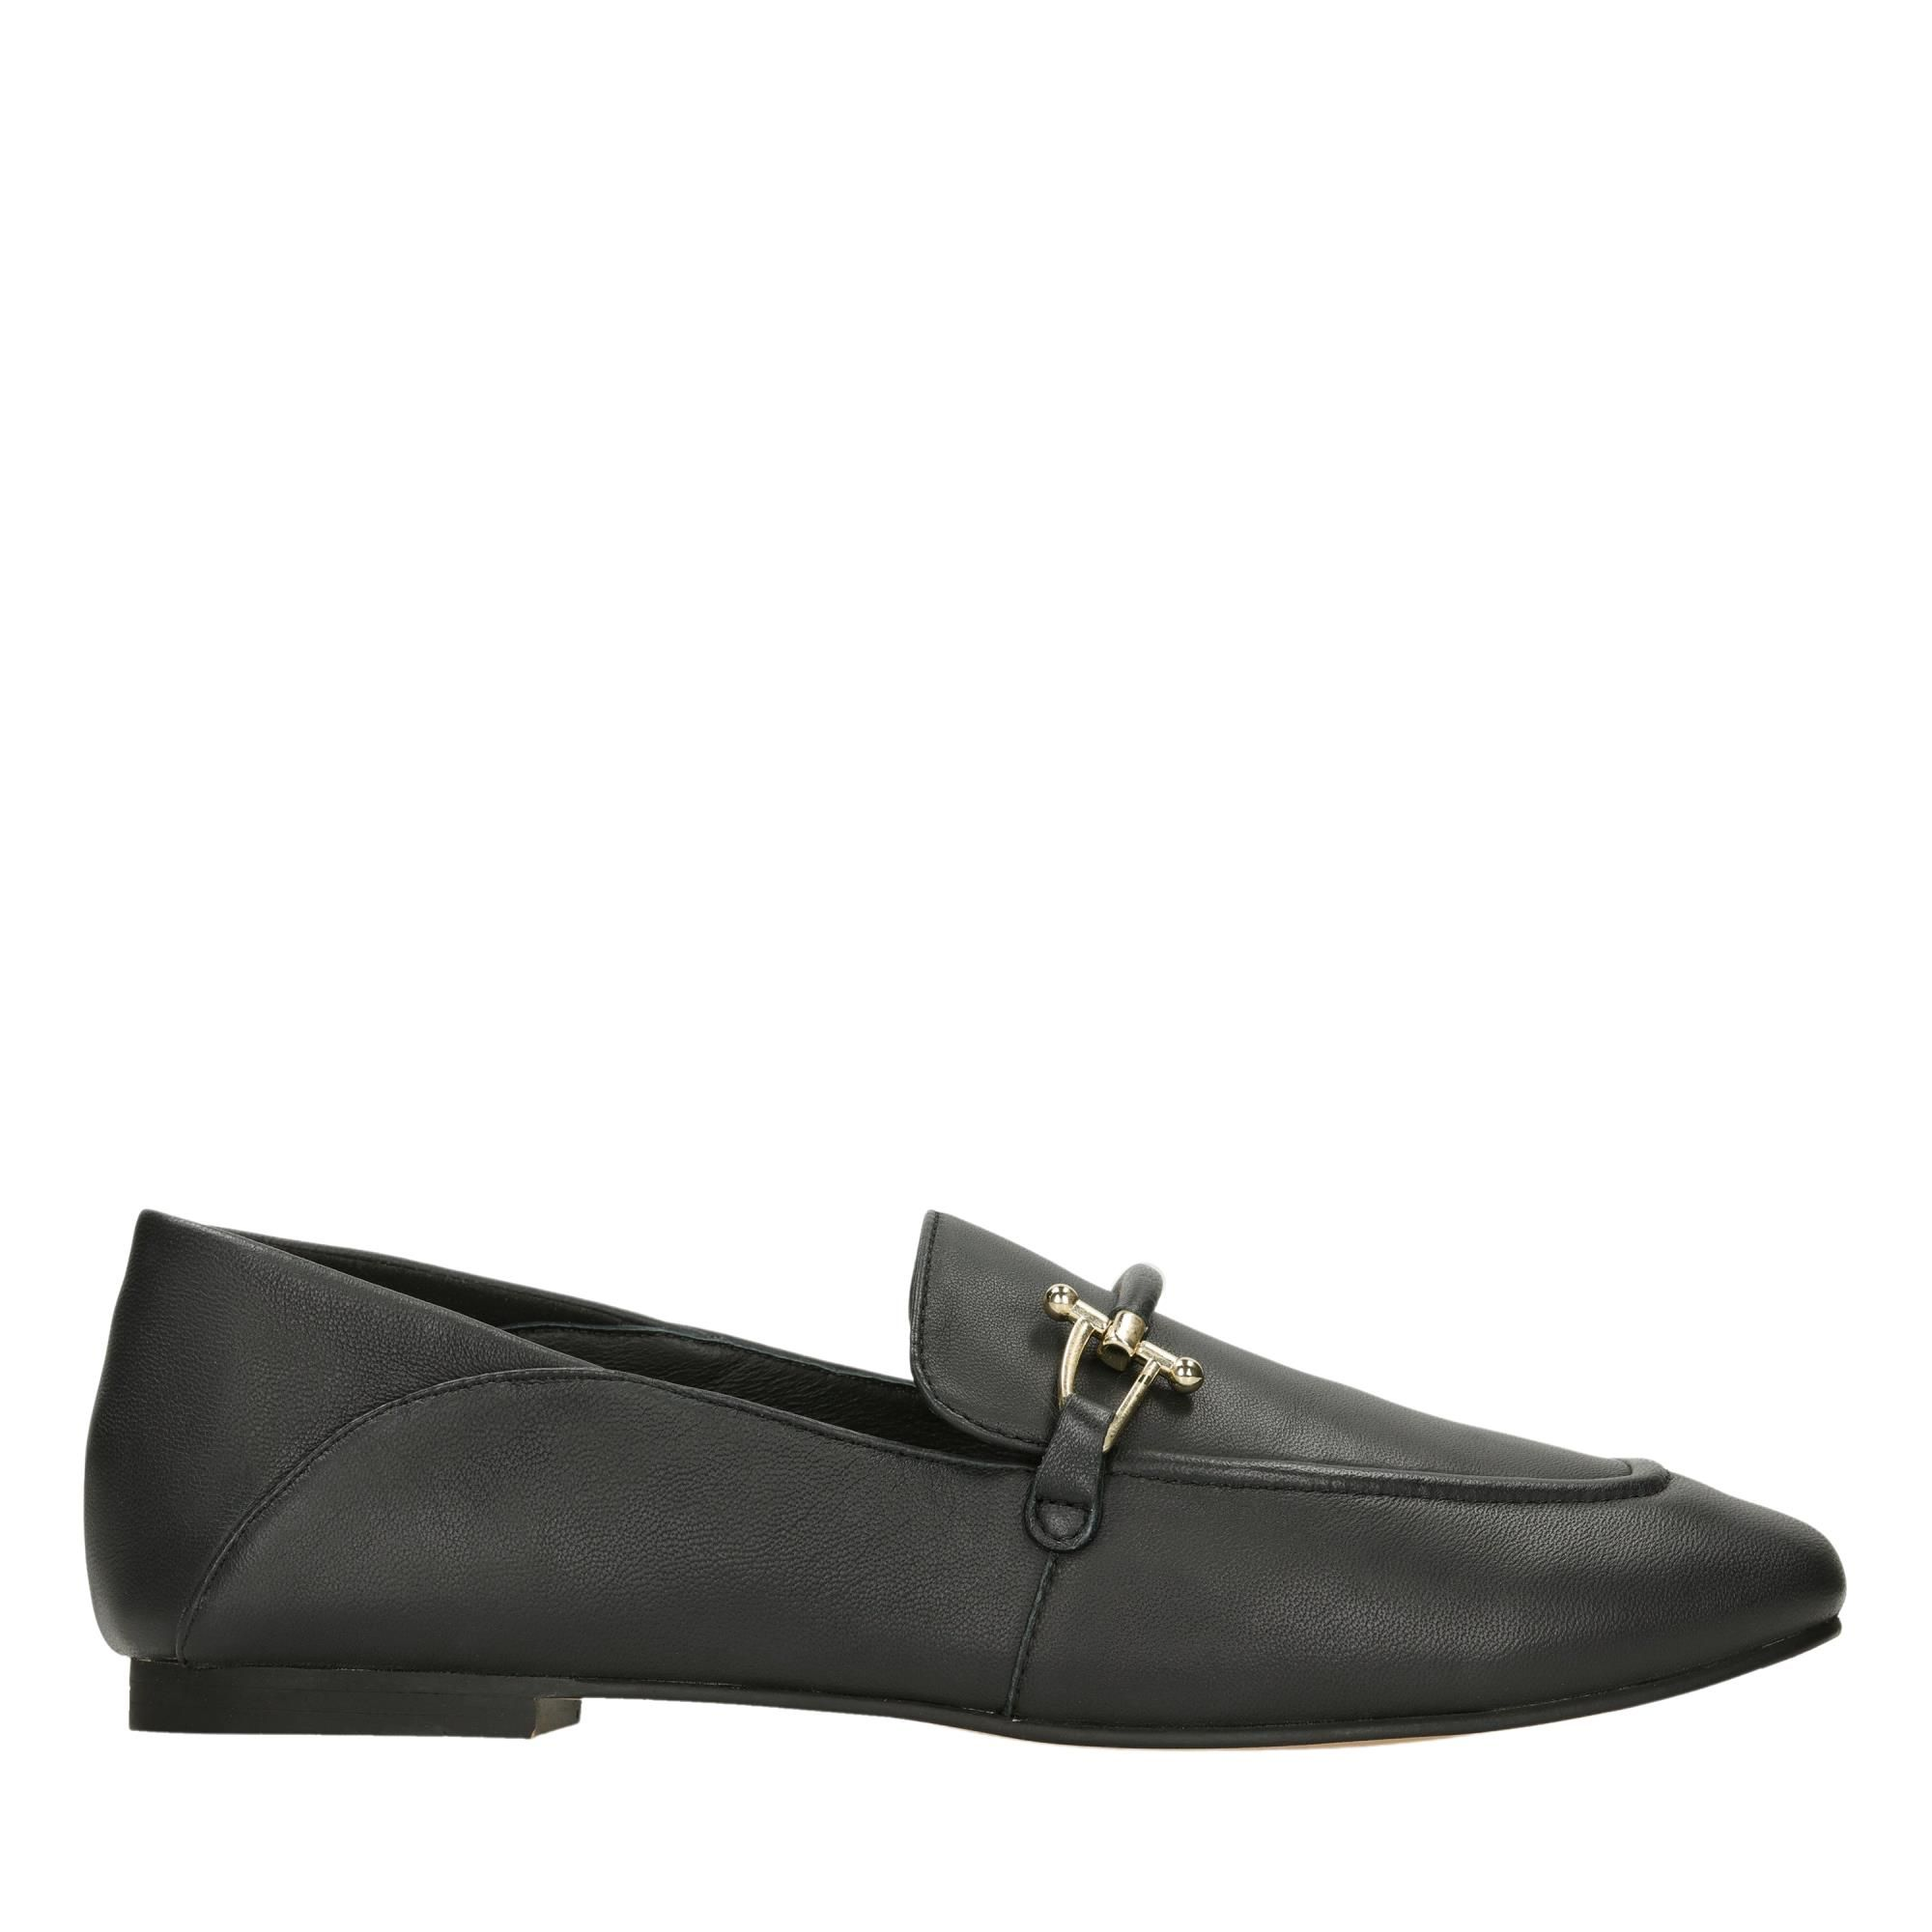 Clarks Pure2 Loafer 26151827 Black Leather